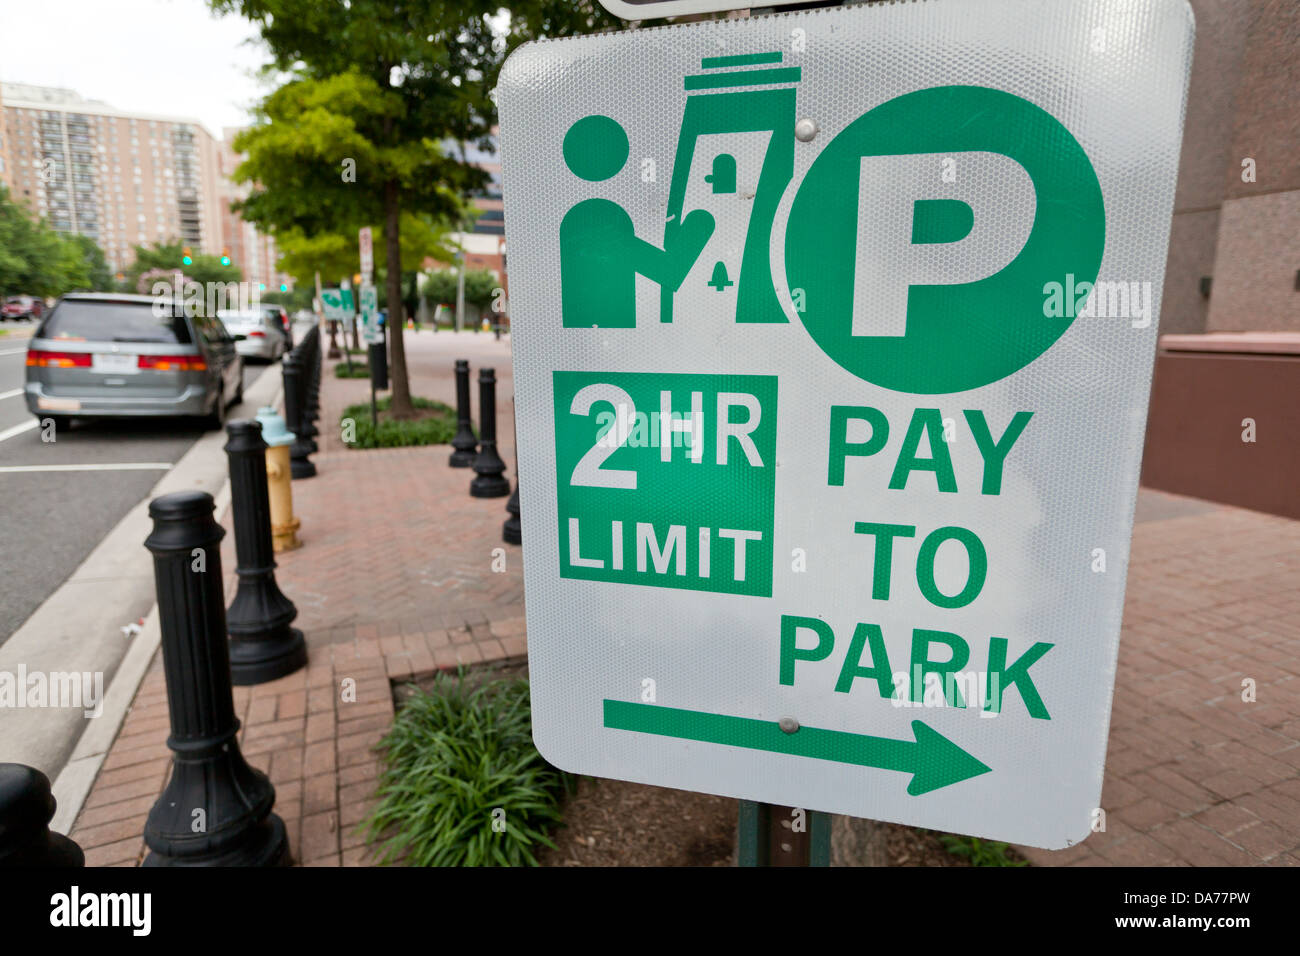 Hourly pay street parking sign - Stock Image